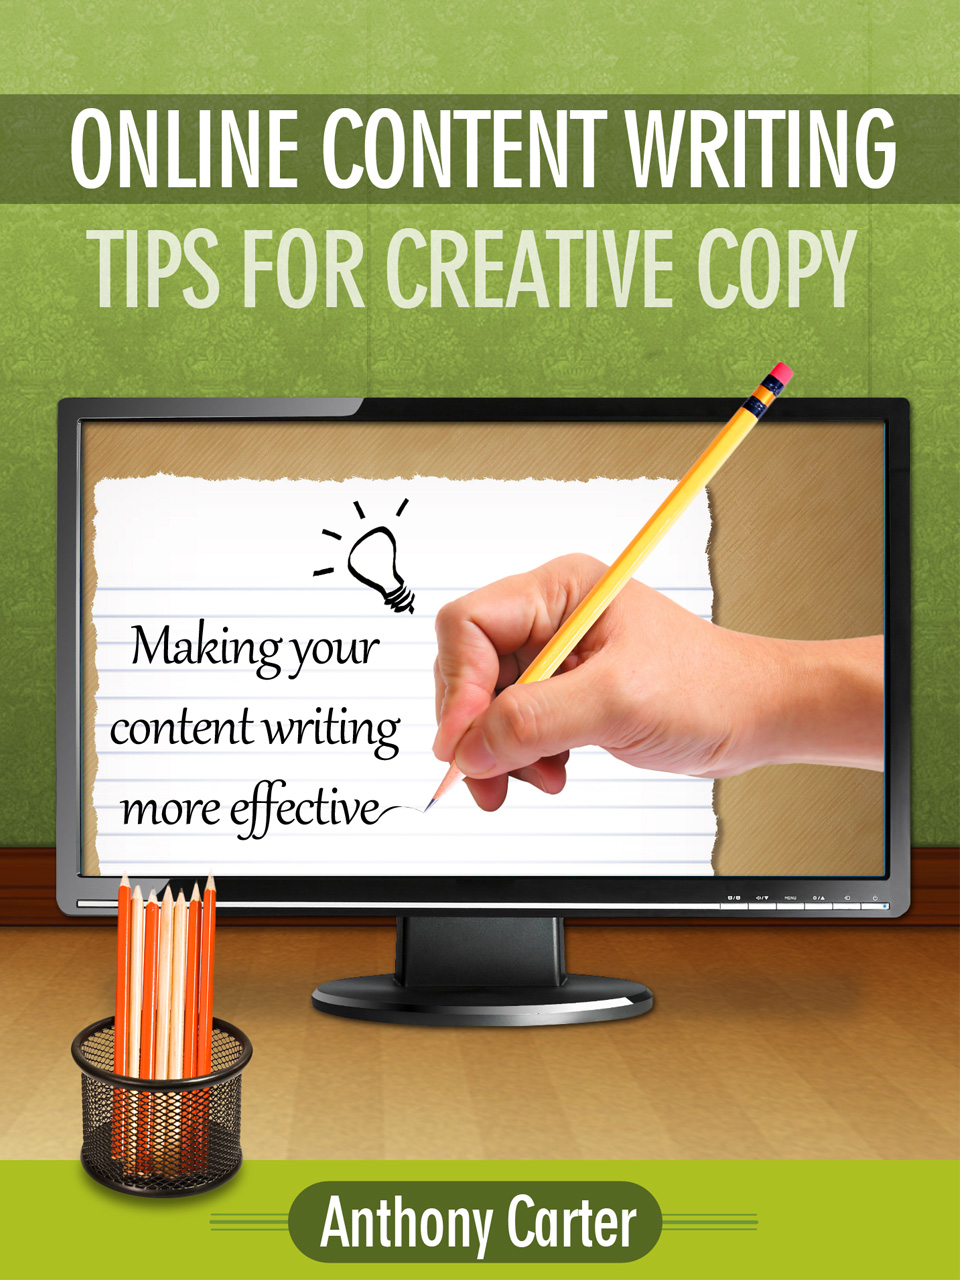 tips for creative writing Creative writing tips show how to improve writing skills through effective use of figurative language, action verbs and much more with examples from top authors.